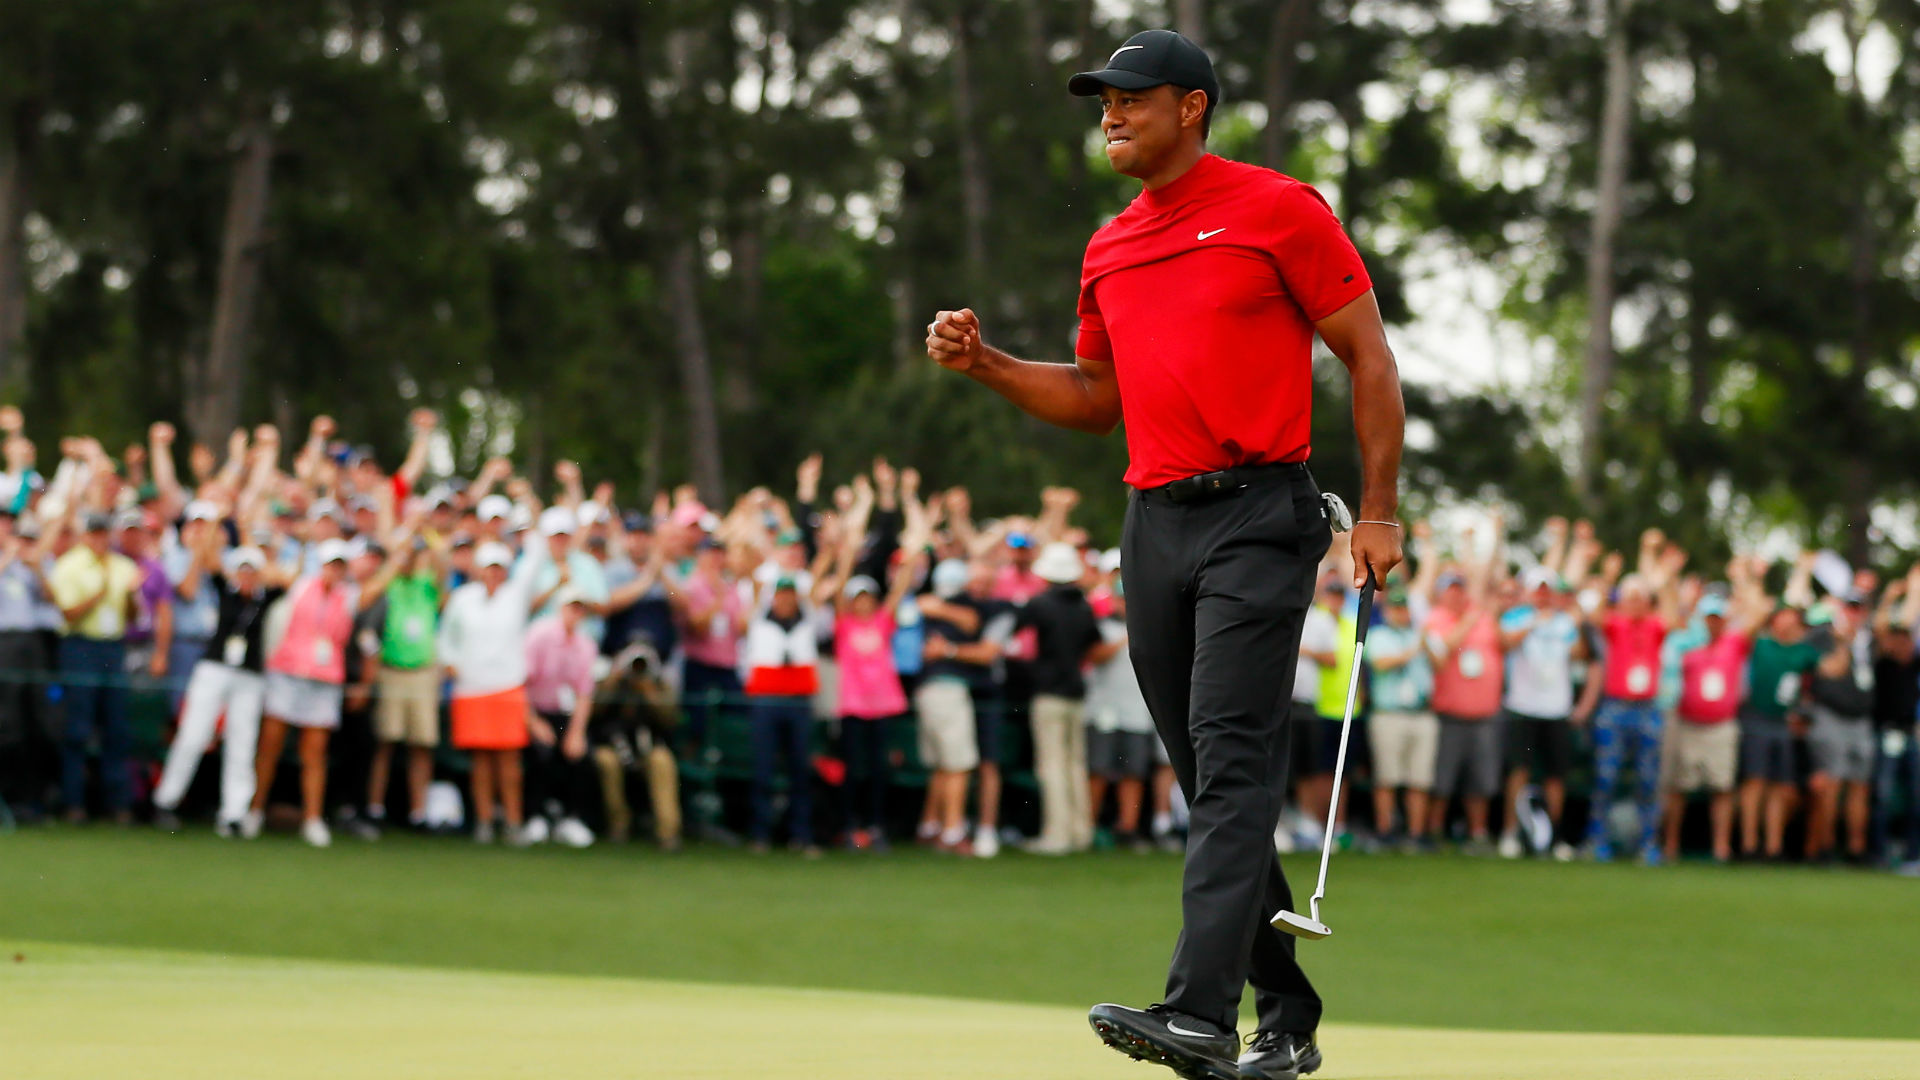 Masters 2020 tee times, pairings for Saturday's Round 3 at Augusta